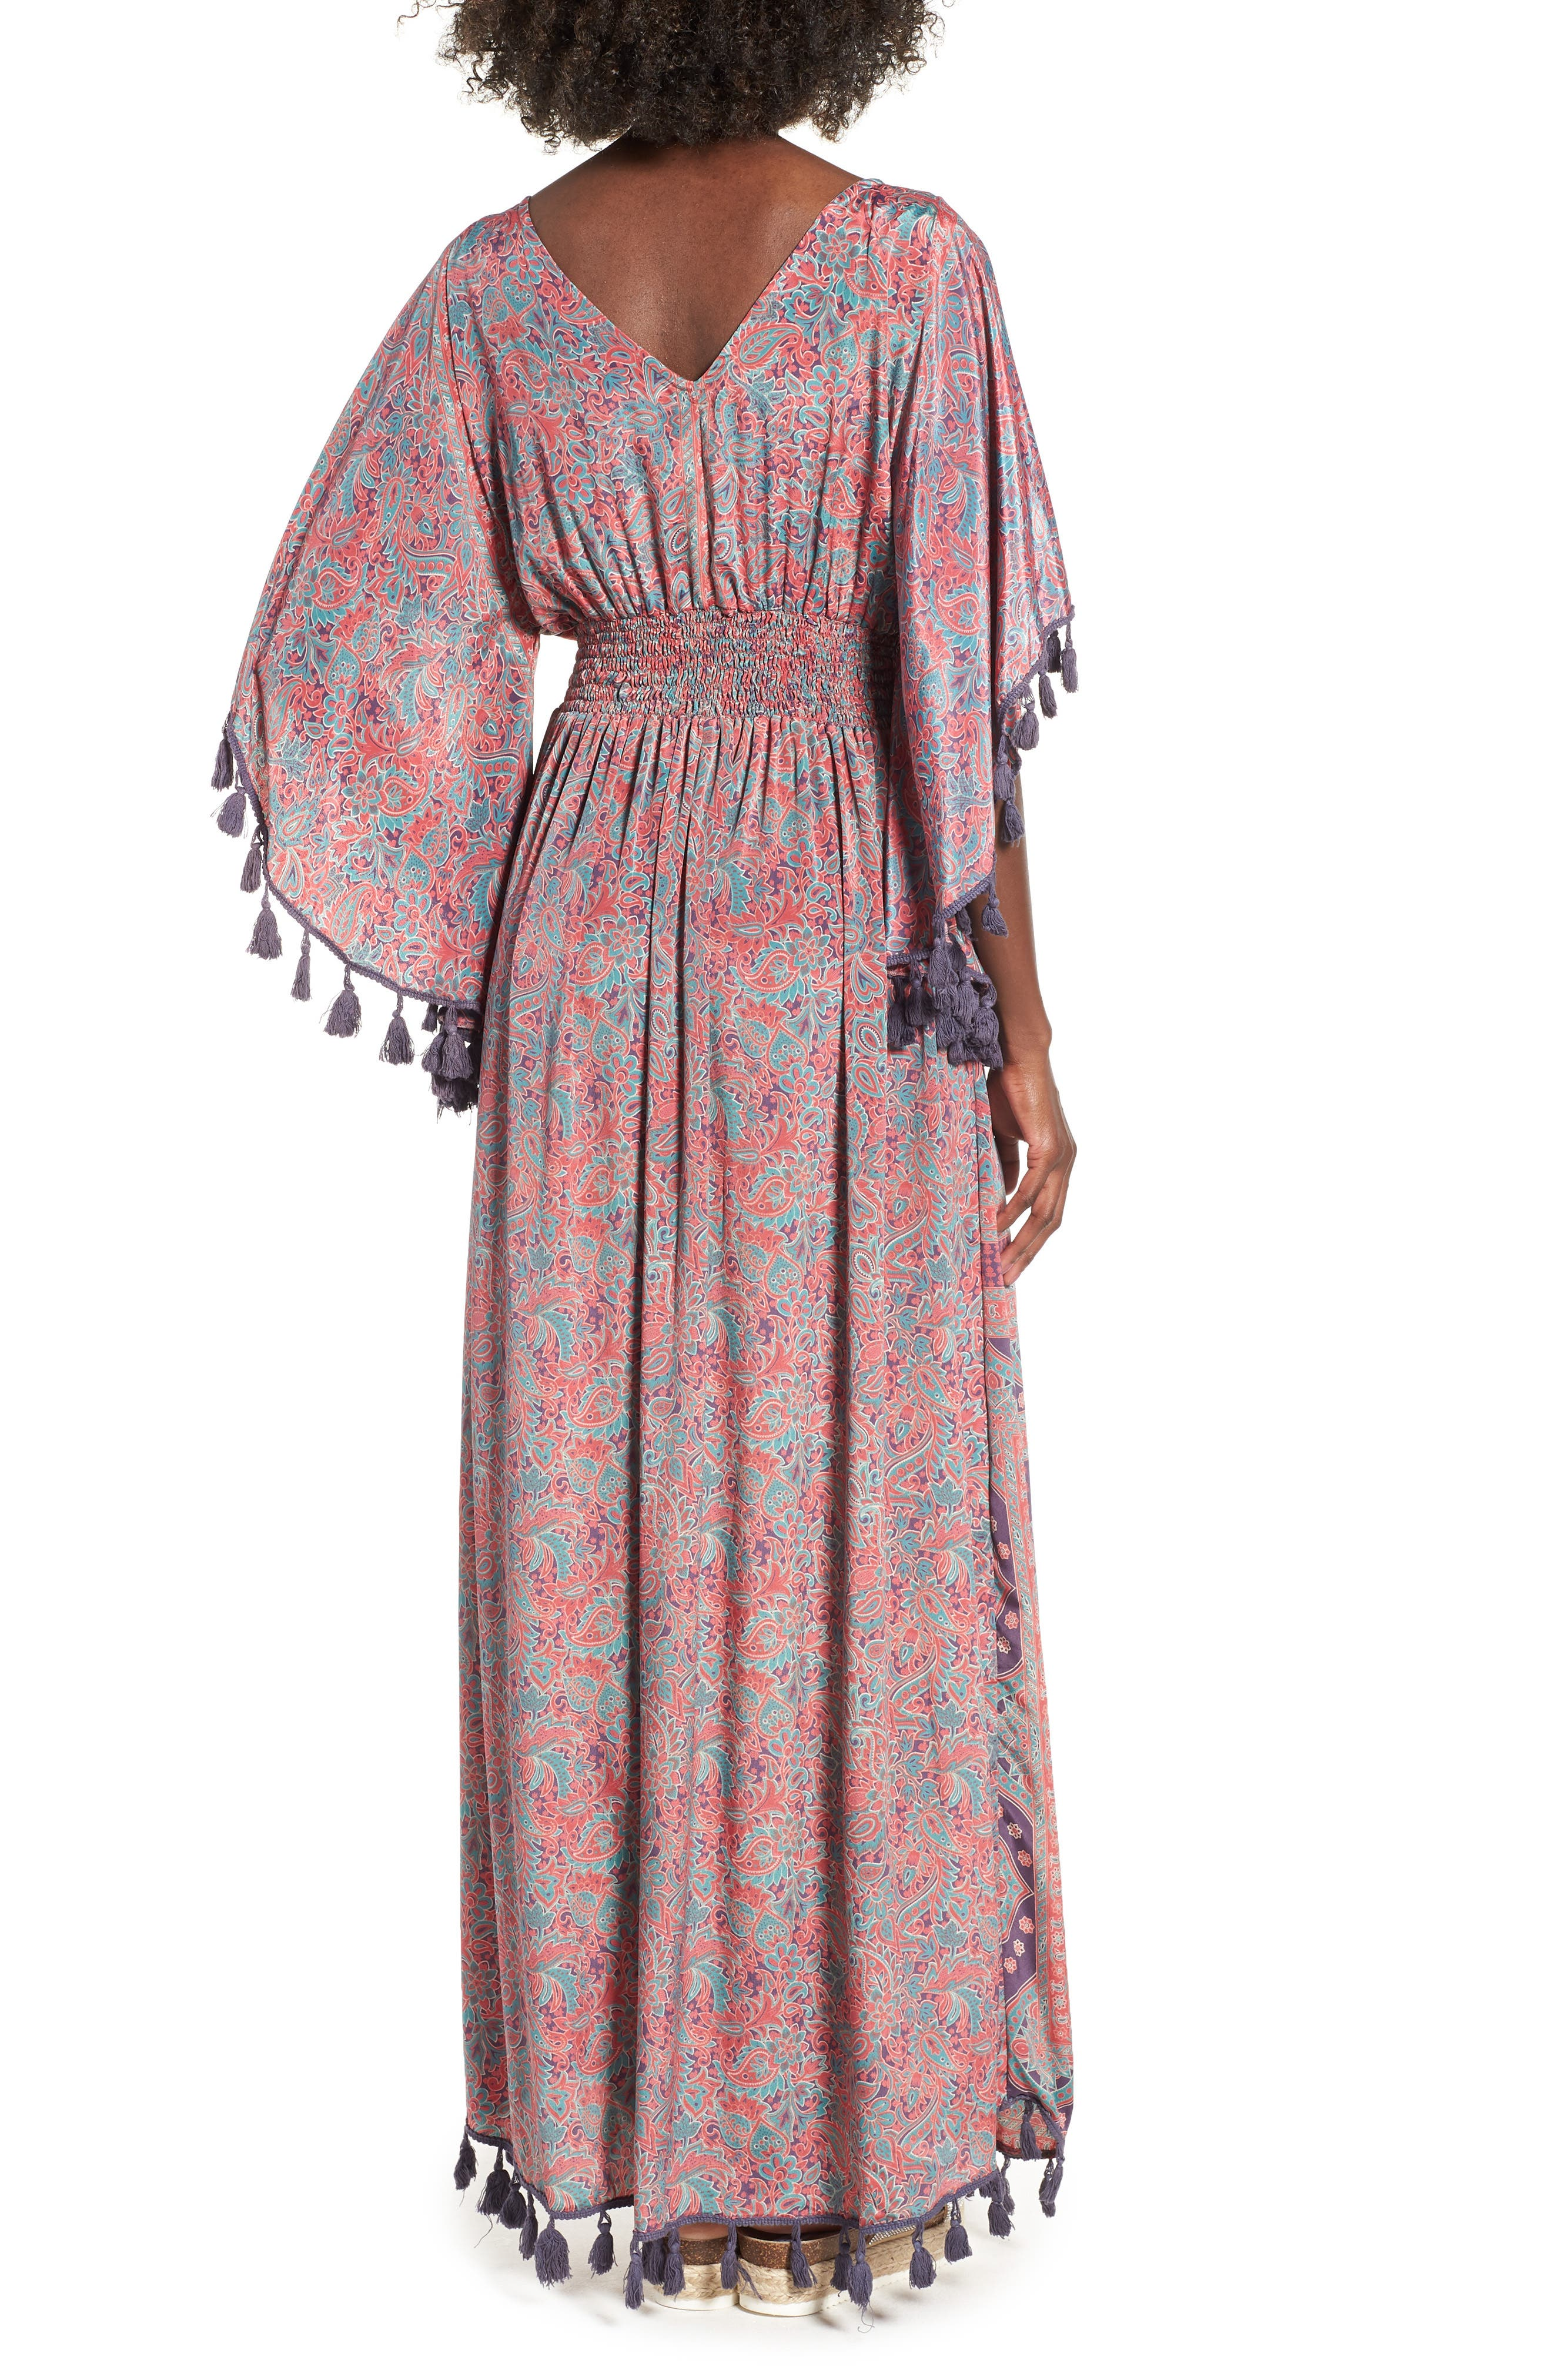 Electric Love Maxi Dress,                             Alternate thumbnail 2, color,                             Multi